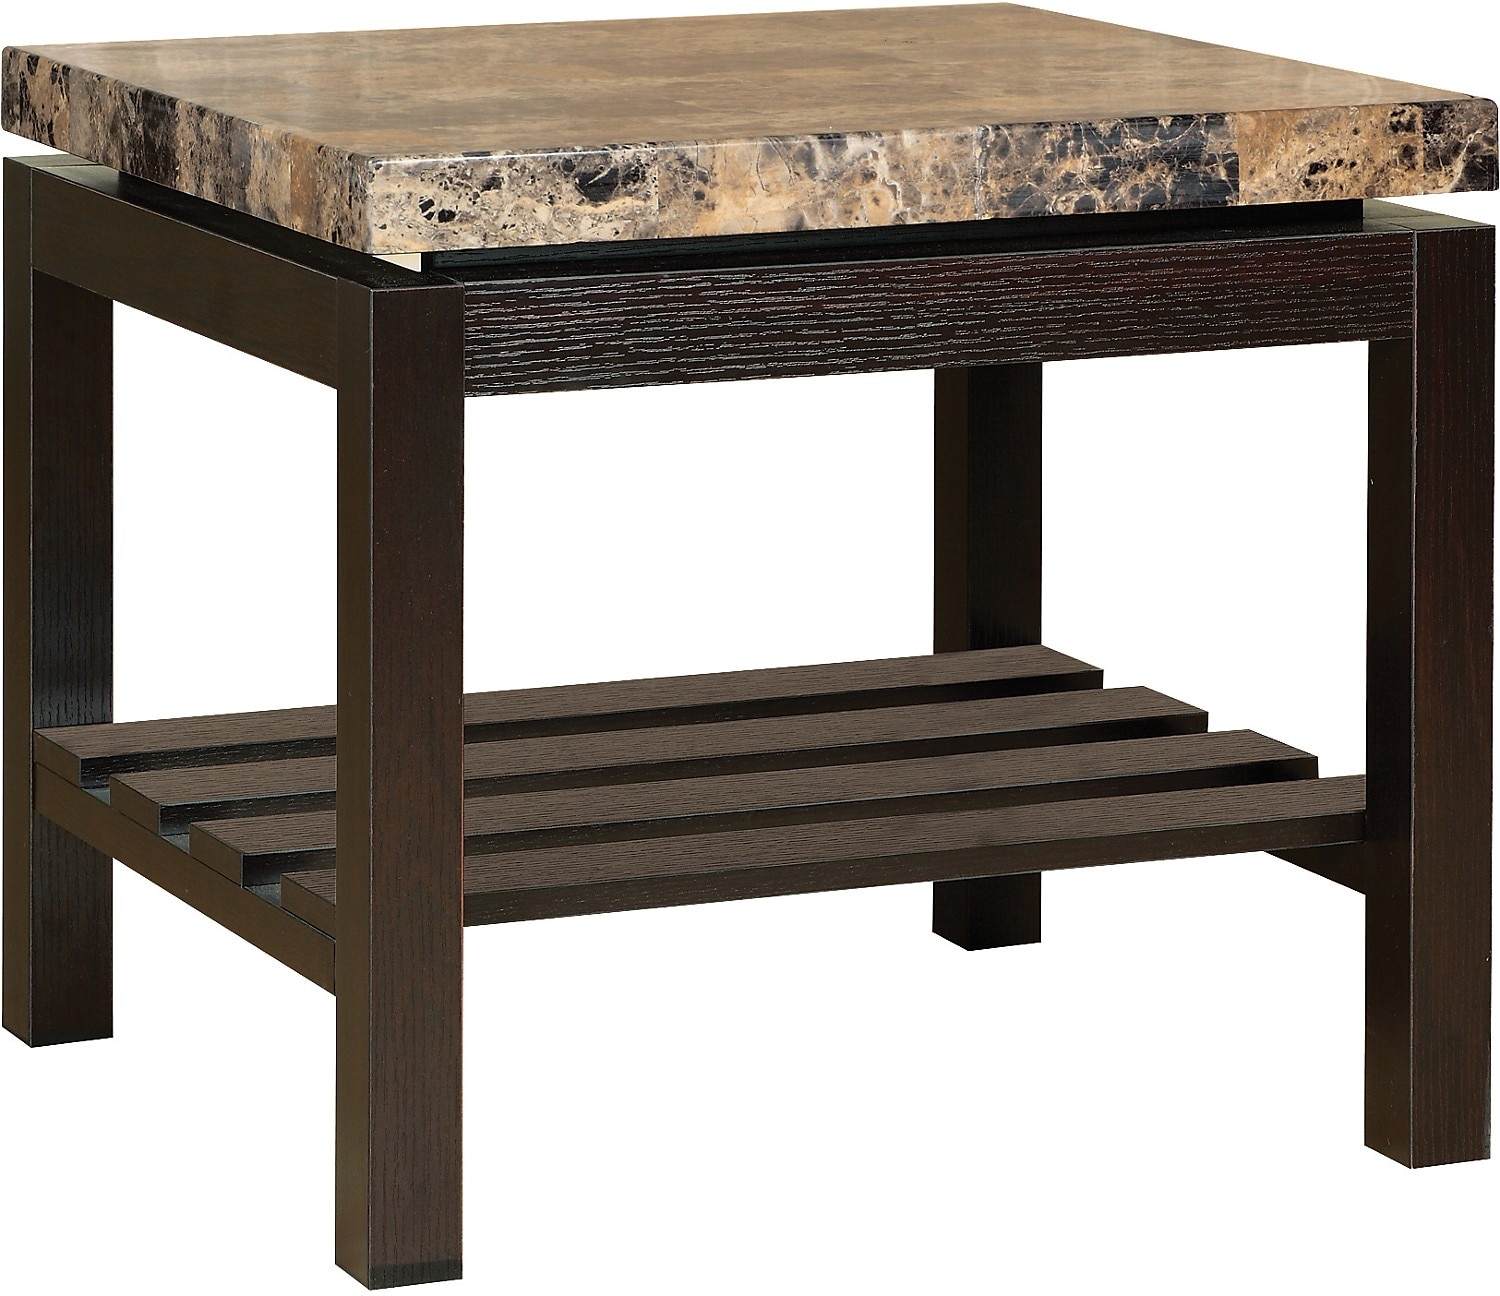 Verona Marble Coffee Table: Verona Coffee Table